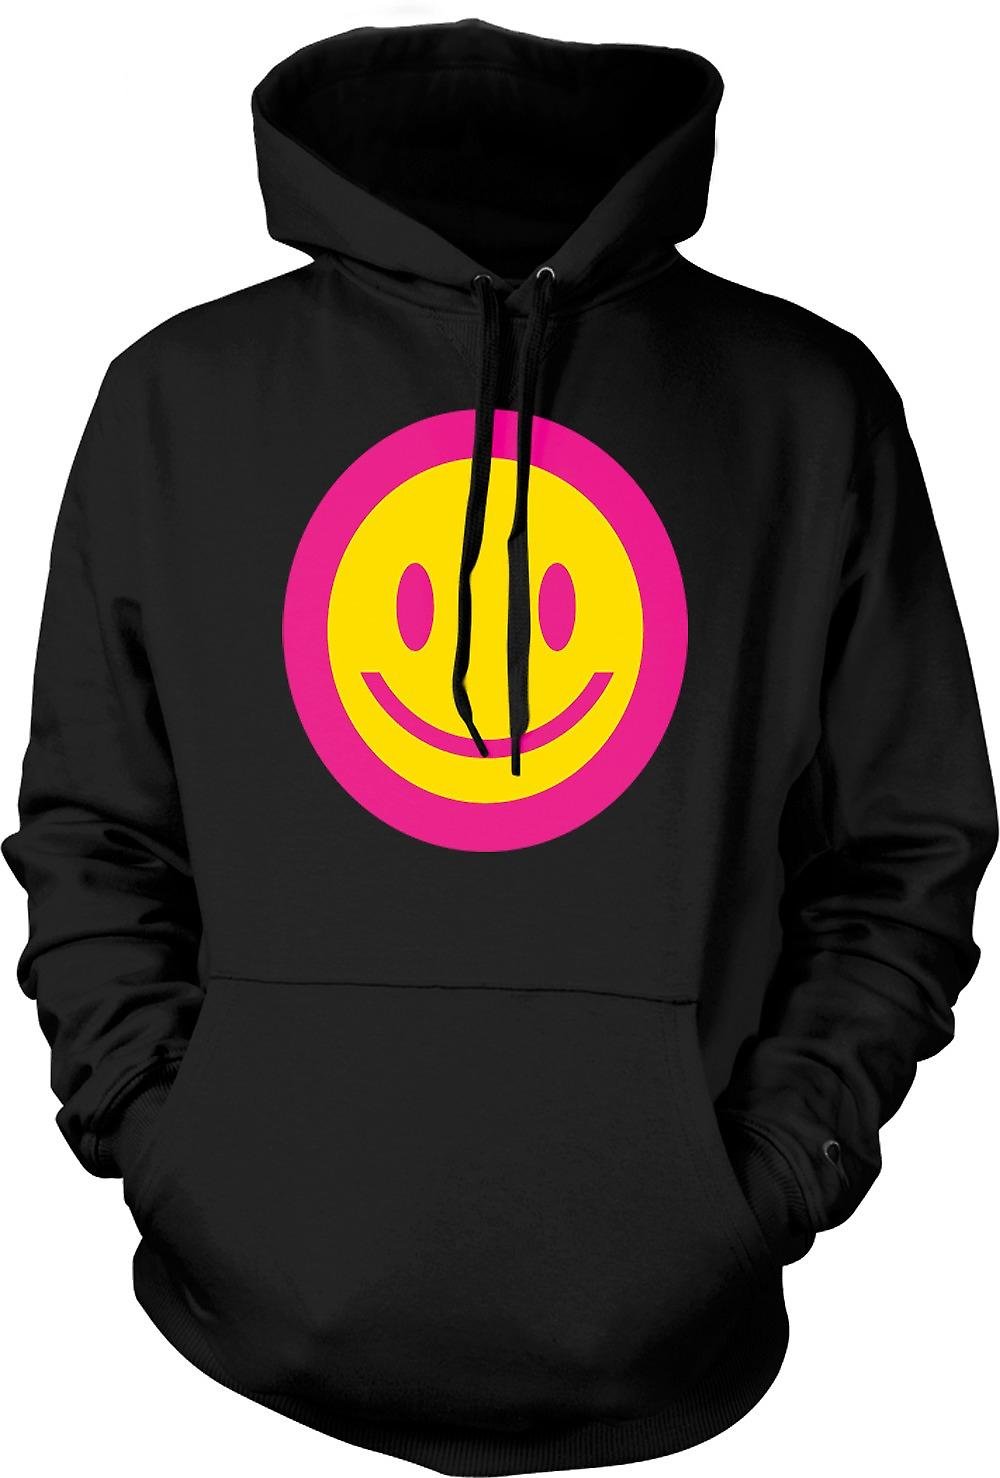 Mens Hoodie - Pink Smiley Face - Acid Kids